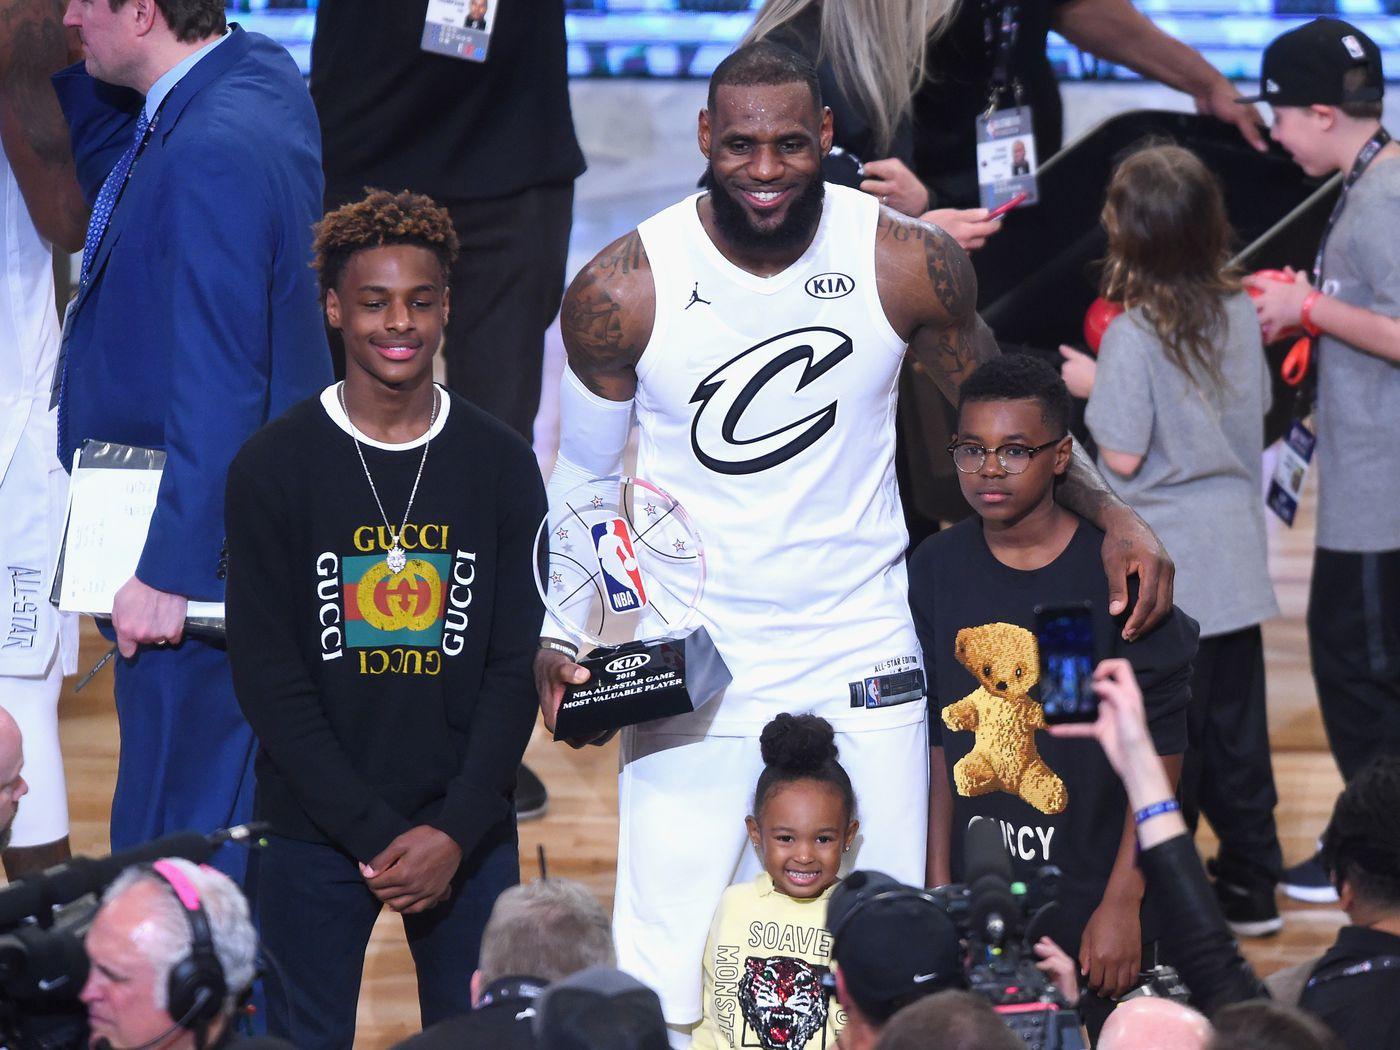 LeBron James' son is a 13-year-old superstar  Meet Bronny James